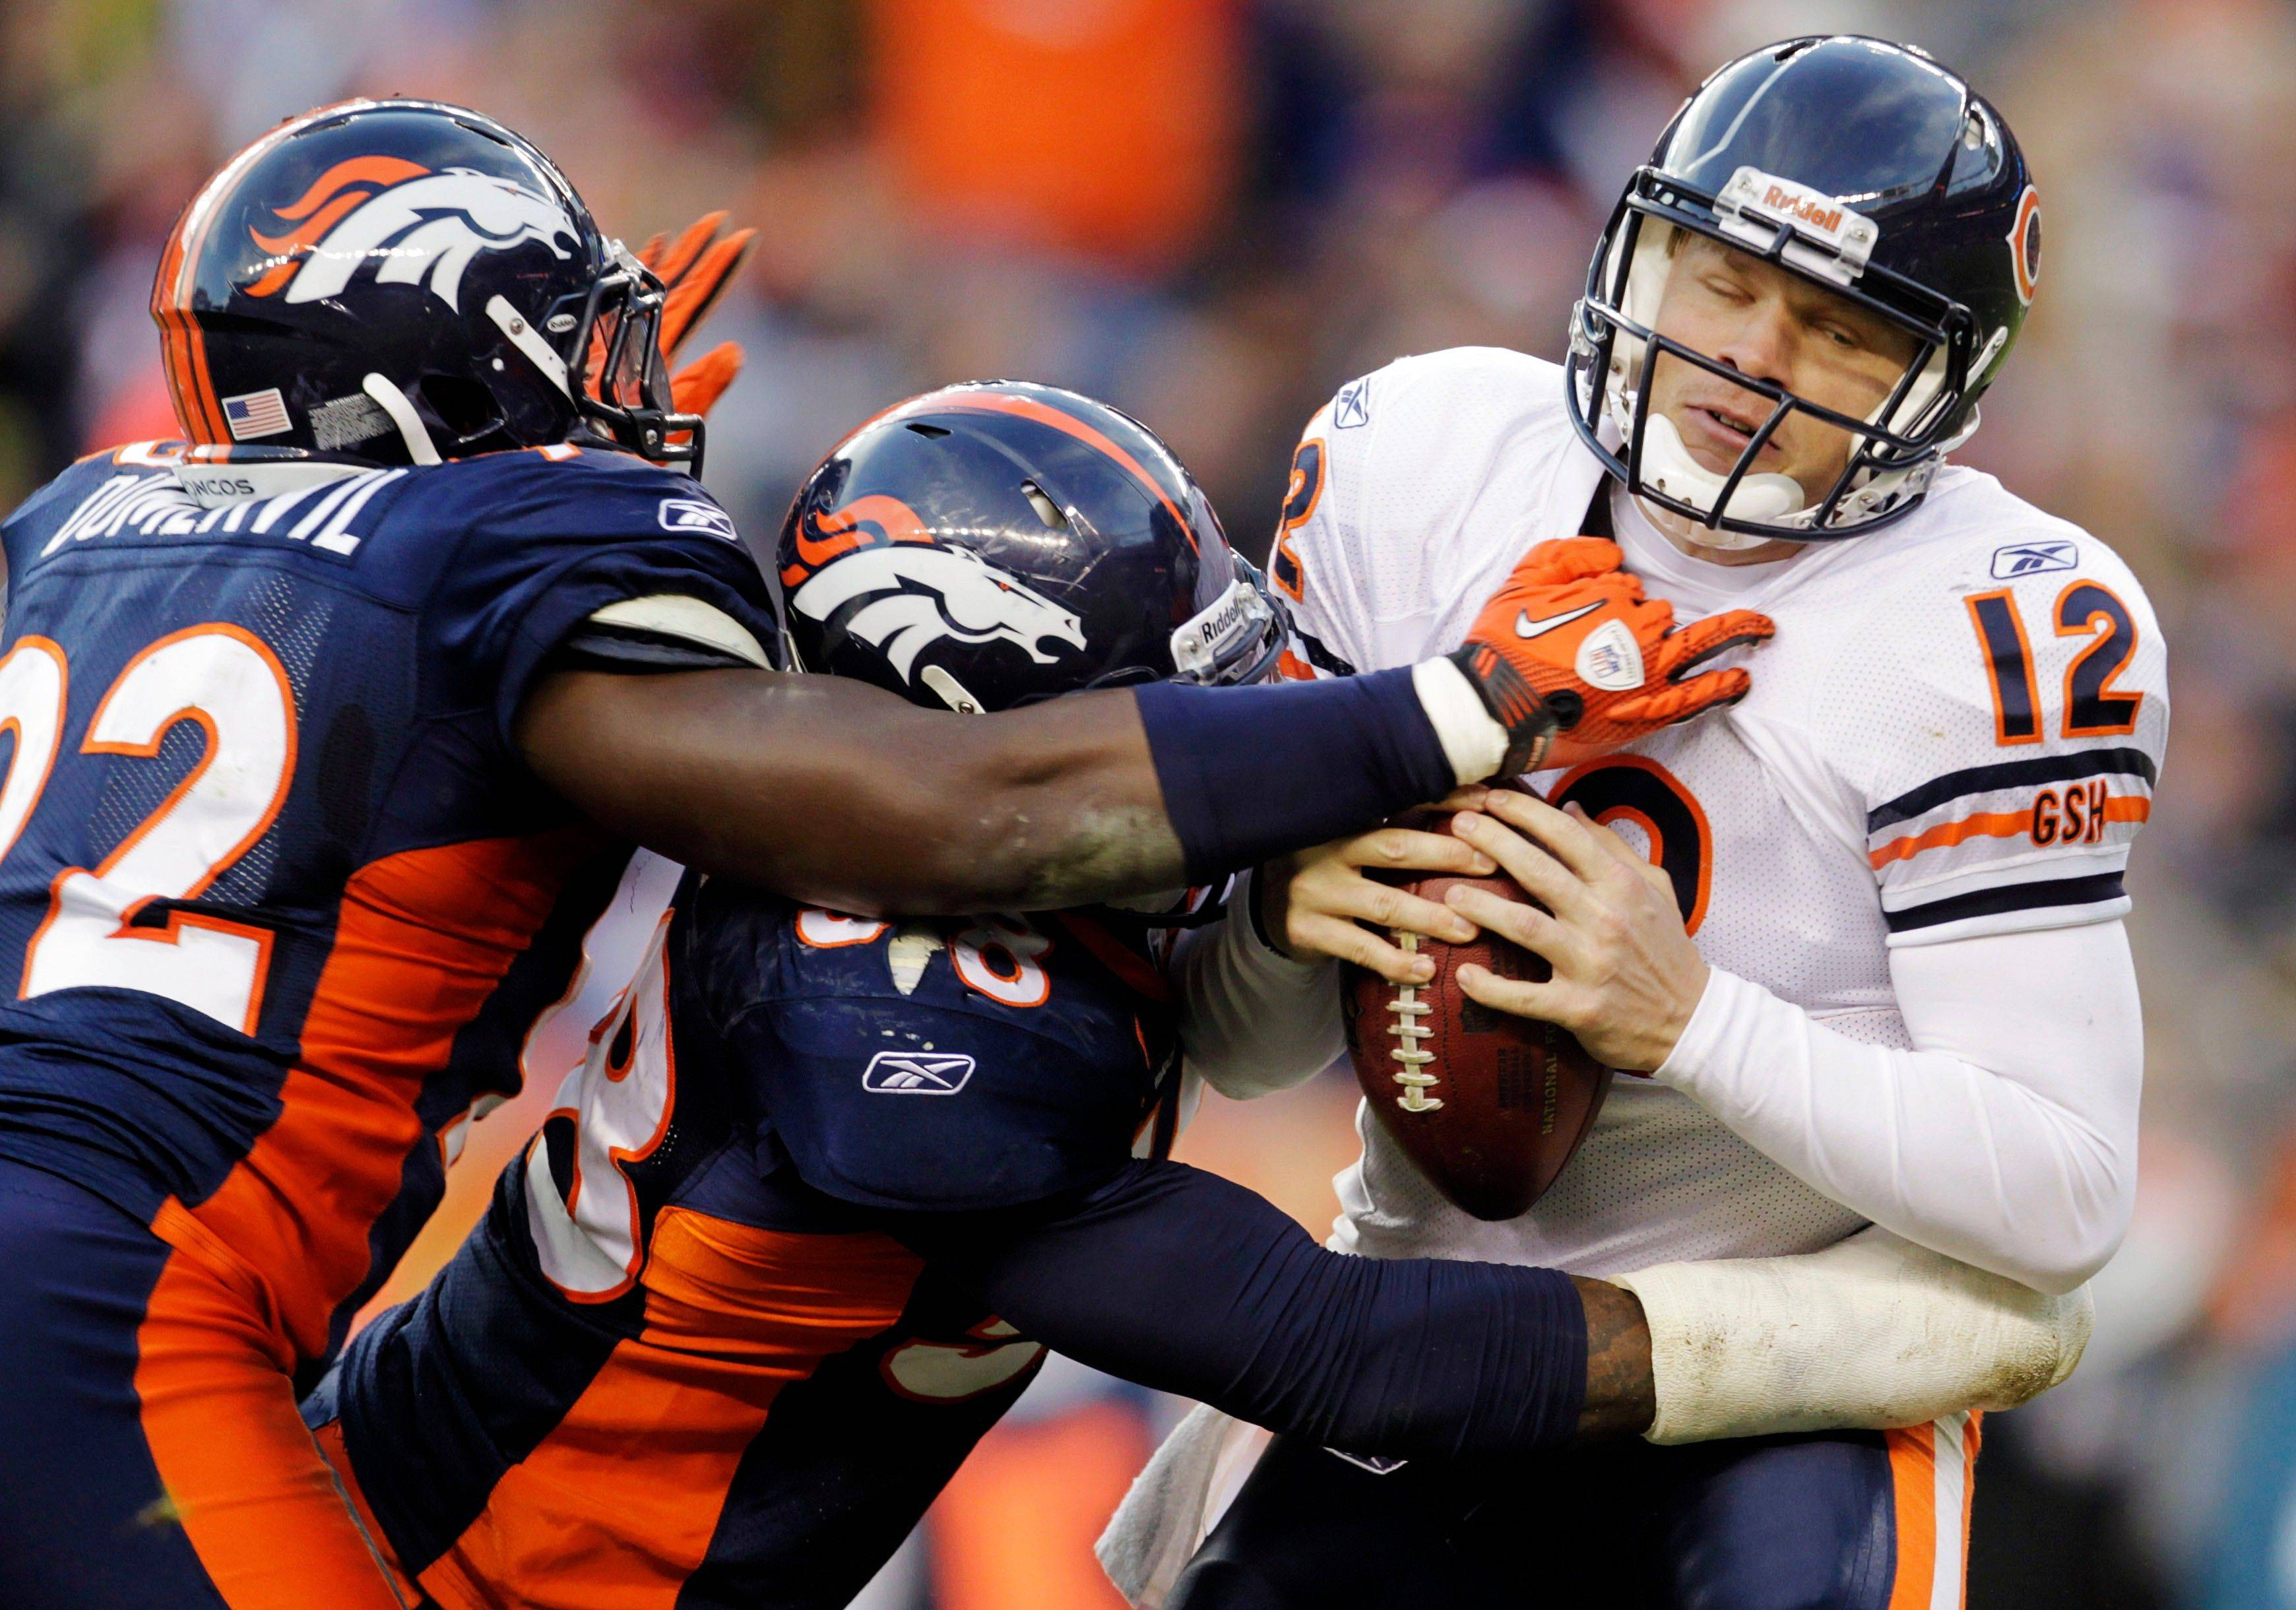 Chicago Bears quarterback Caleb Hanie (12) is sacked by Denver Broncos defensive end Elvis Dumervil (92) and outside linebacker Von Miller (58) in the third quarter.